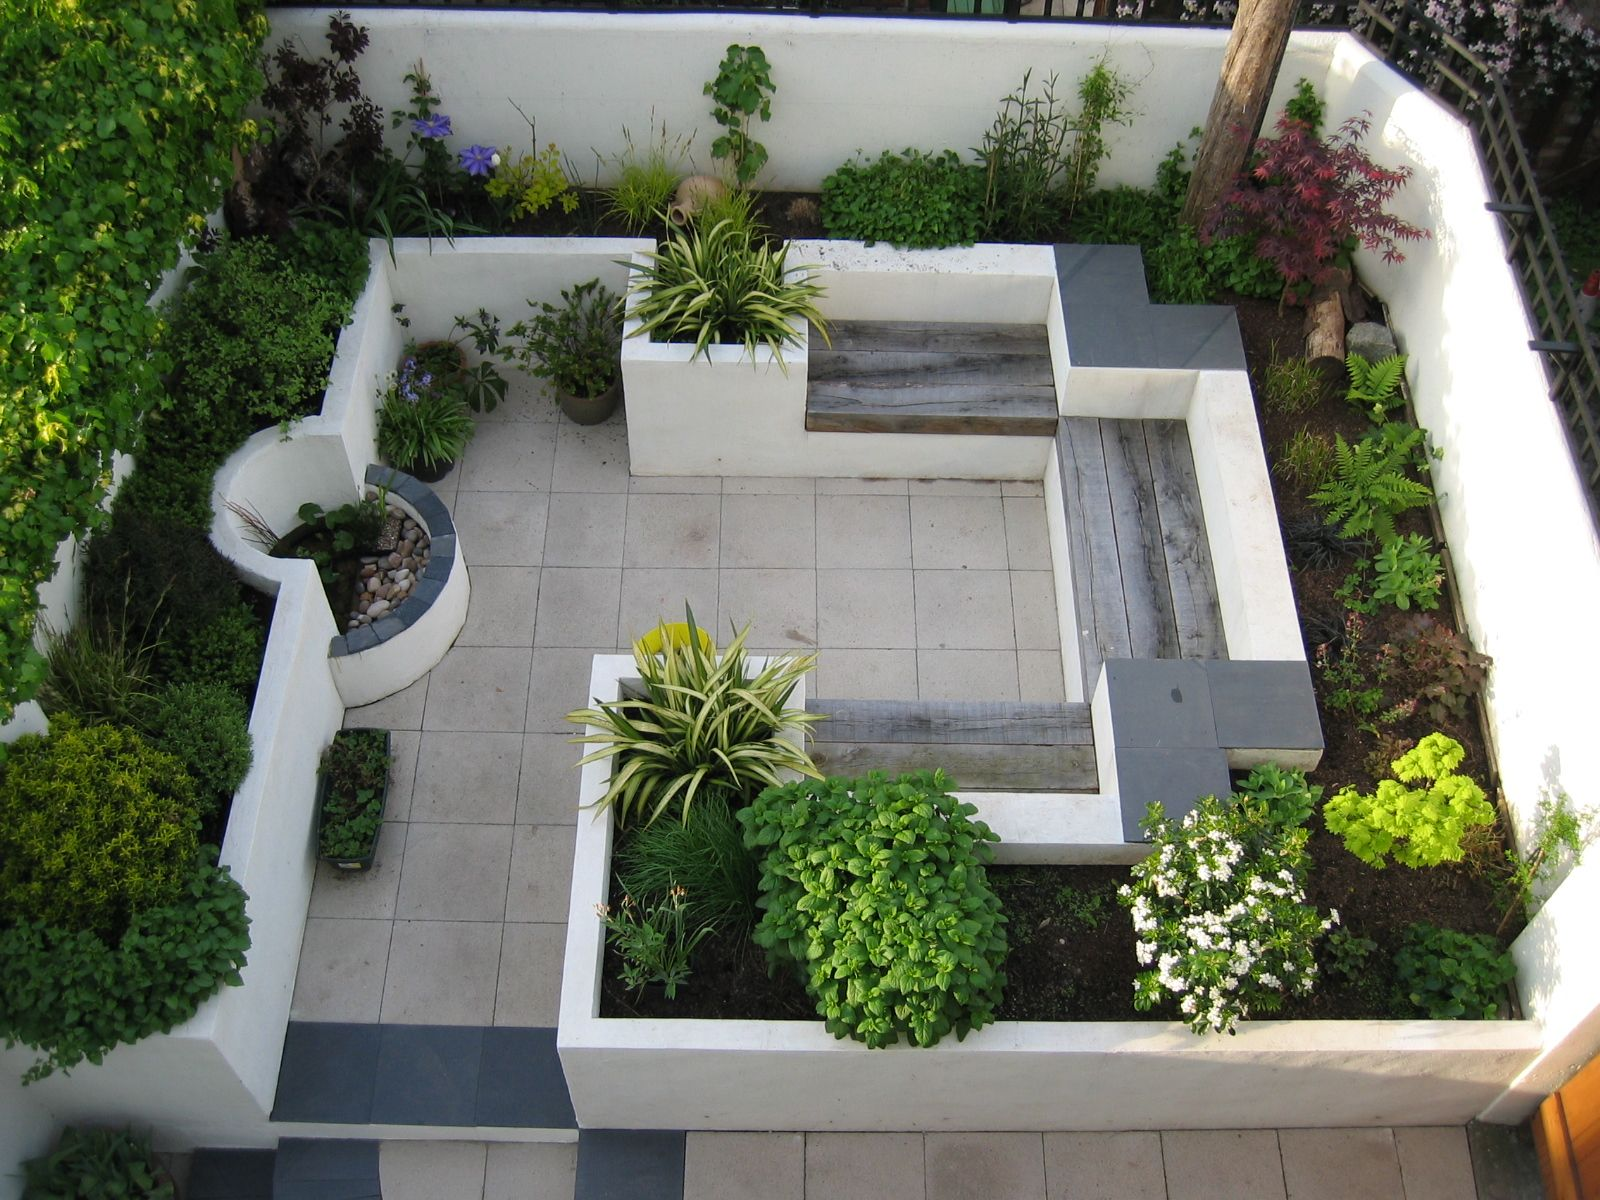 This modern courtyard garden makes good use of a small for Small modern house garden design